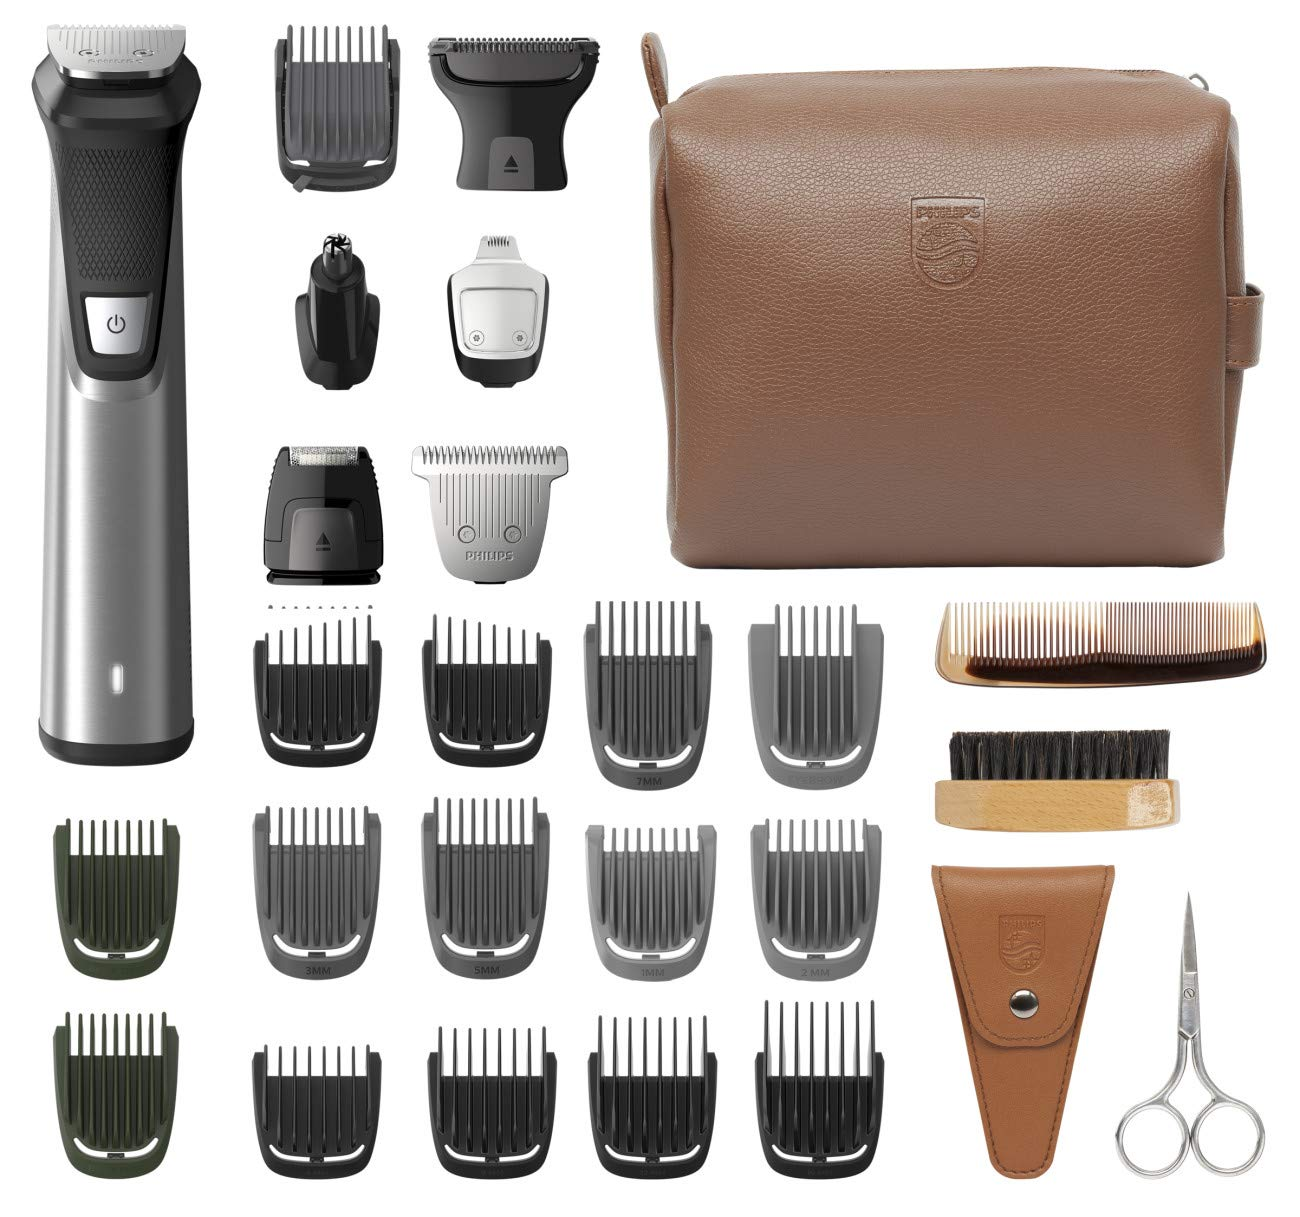 Philips Norelco Multi Groomer MG7791/40 29 Piece Mens Grooming Kit, Trimmer for Beard, Head, Body, and Face - NO BLADE OIL NEEDED